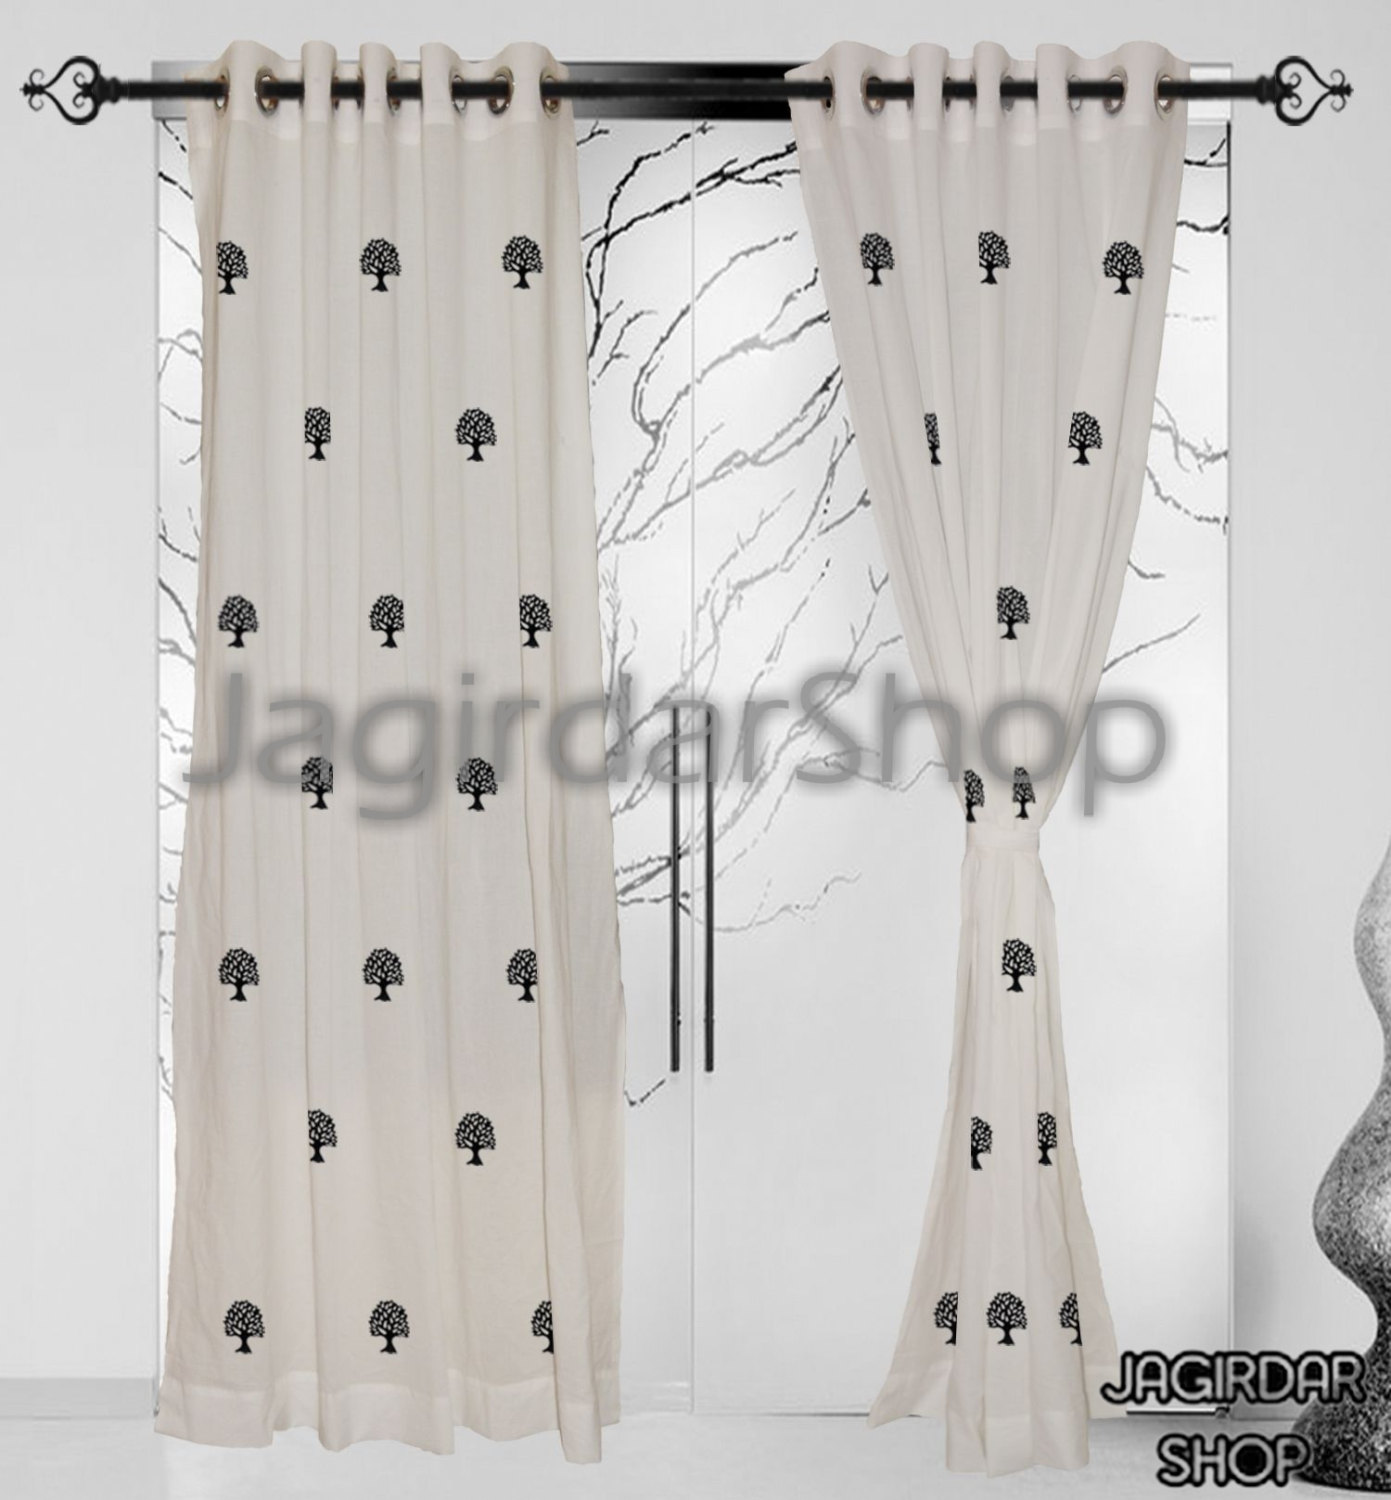 Cotton Curtain Panels Curtains Cotton White Hand Block Printed Eyelet Naturl Tree Curtain Panels Windows Door 2pcs Set Eerra